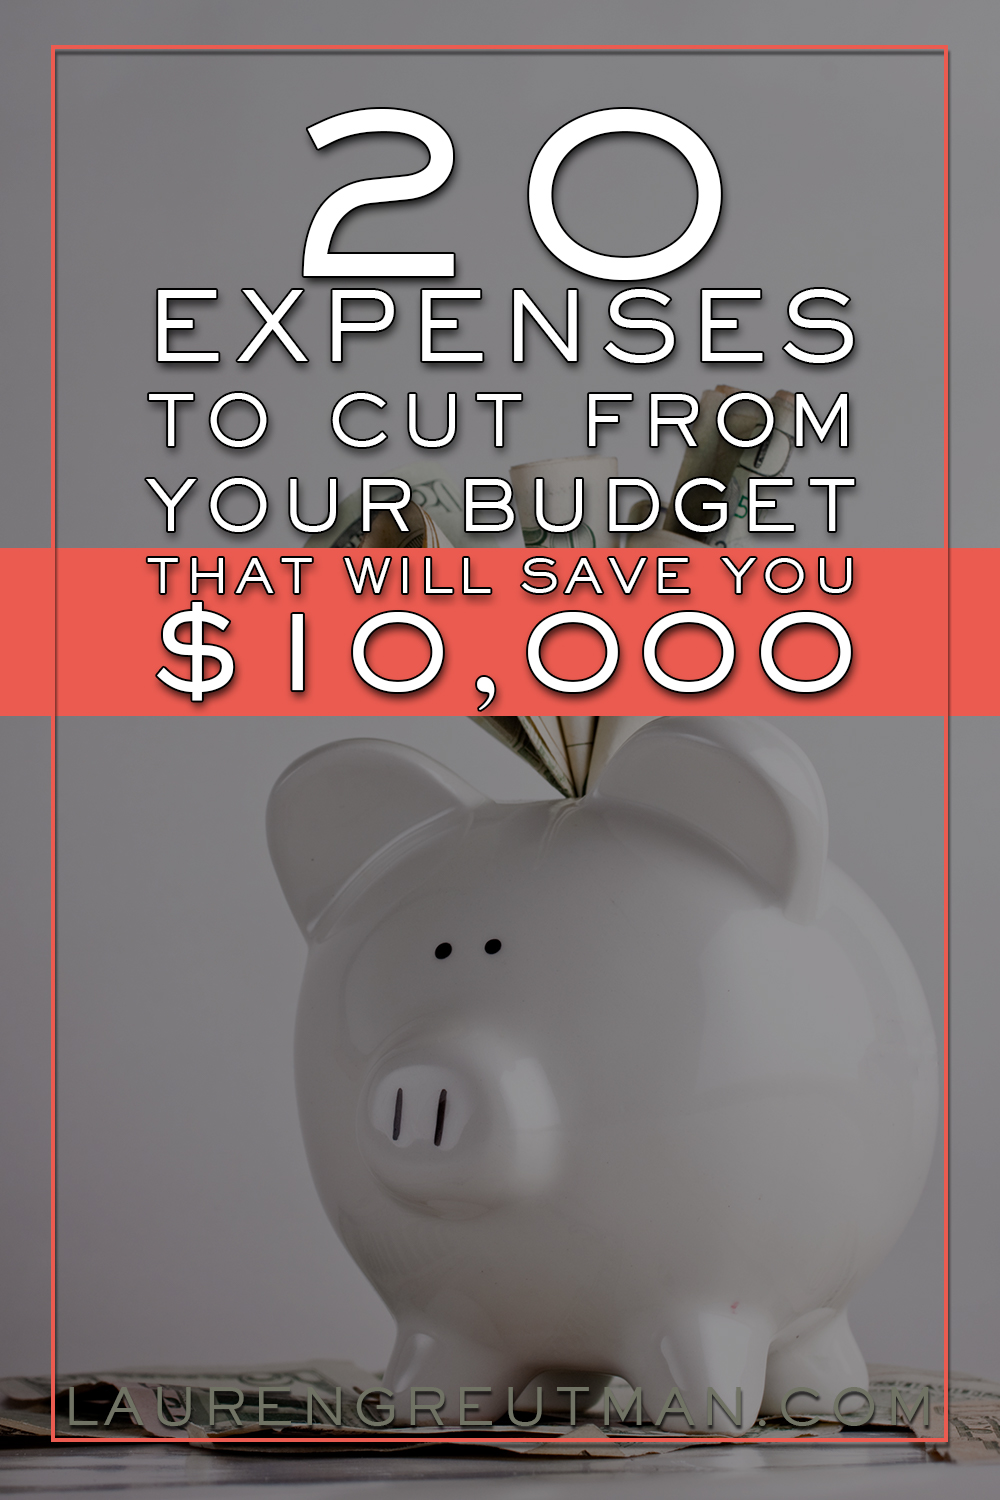 Looking for some easy items to cut from your budget and save money? These might just save you $10,000 this year!